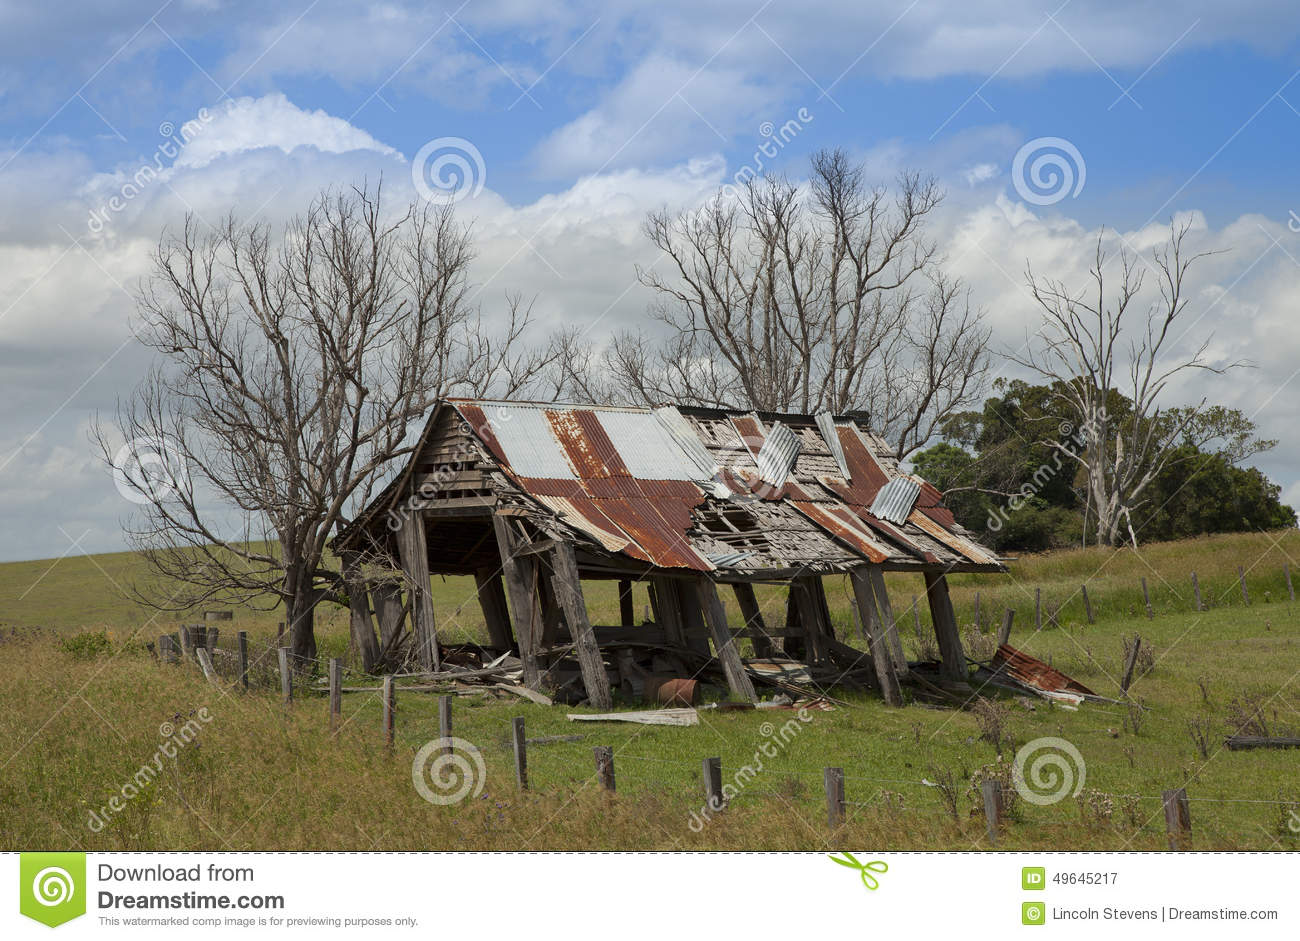 an old timber shed leaning over stock image image of junk